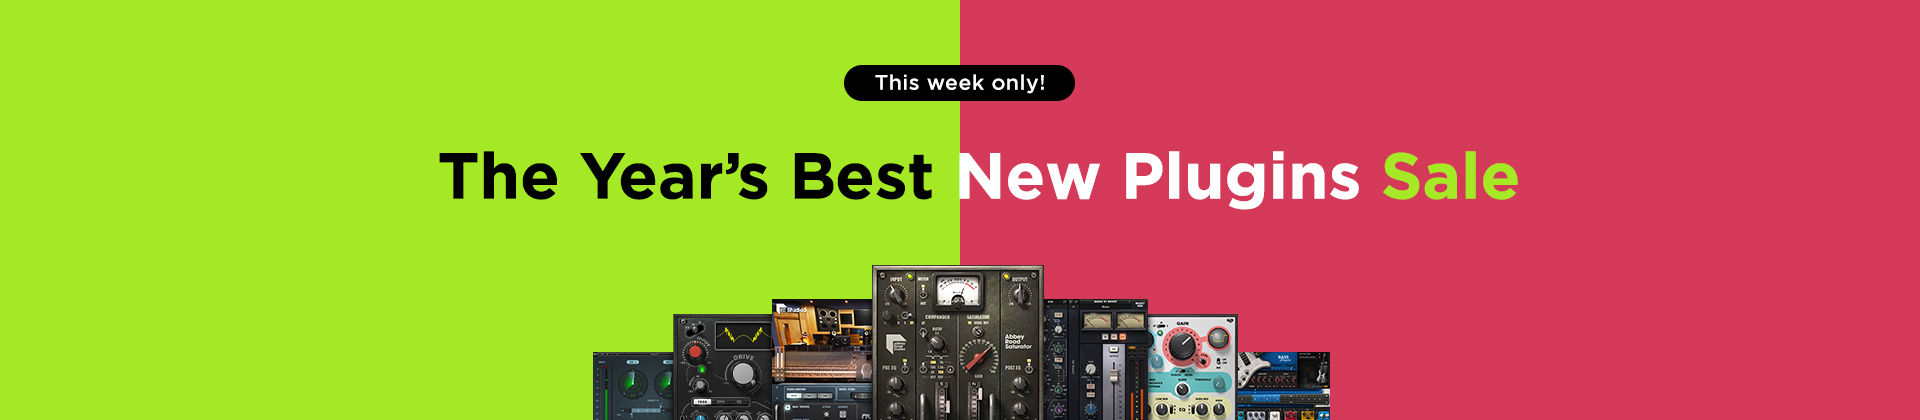 New Plugins Sale